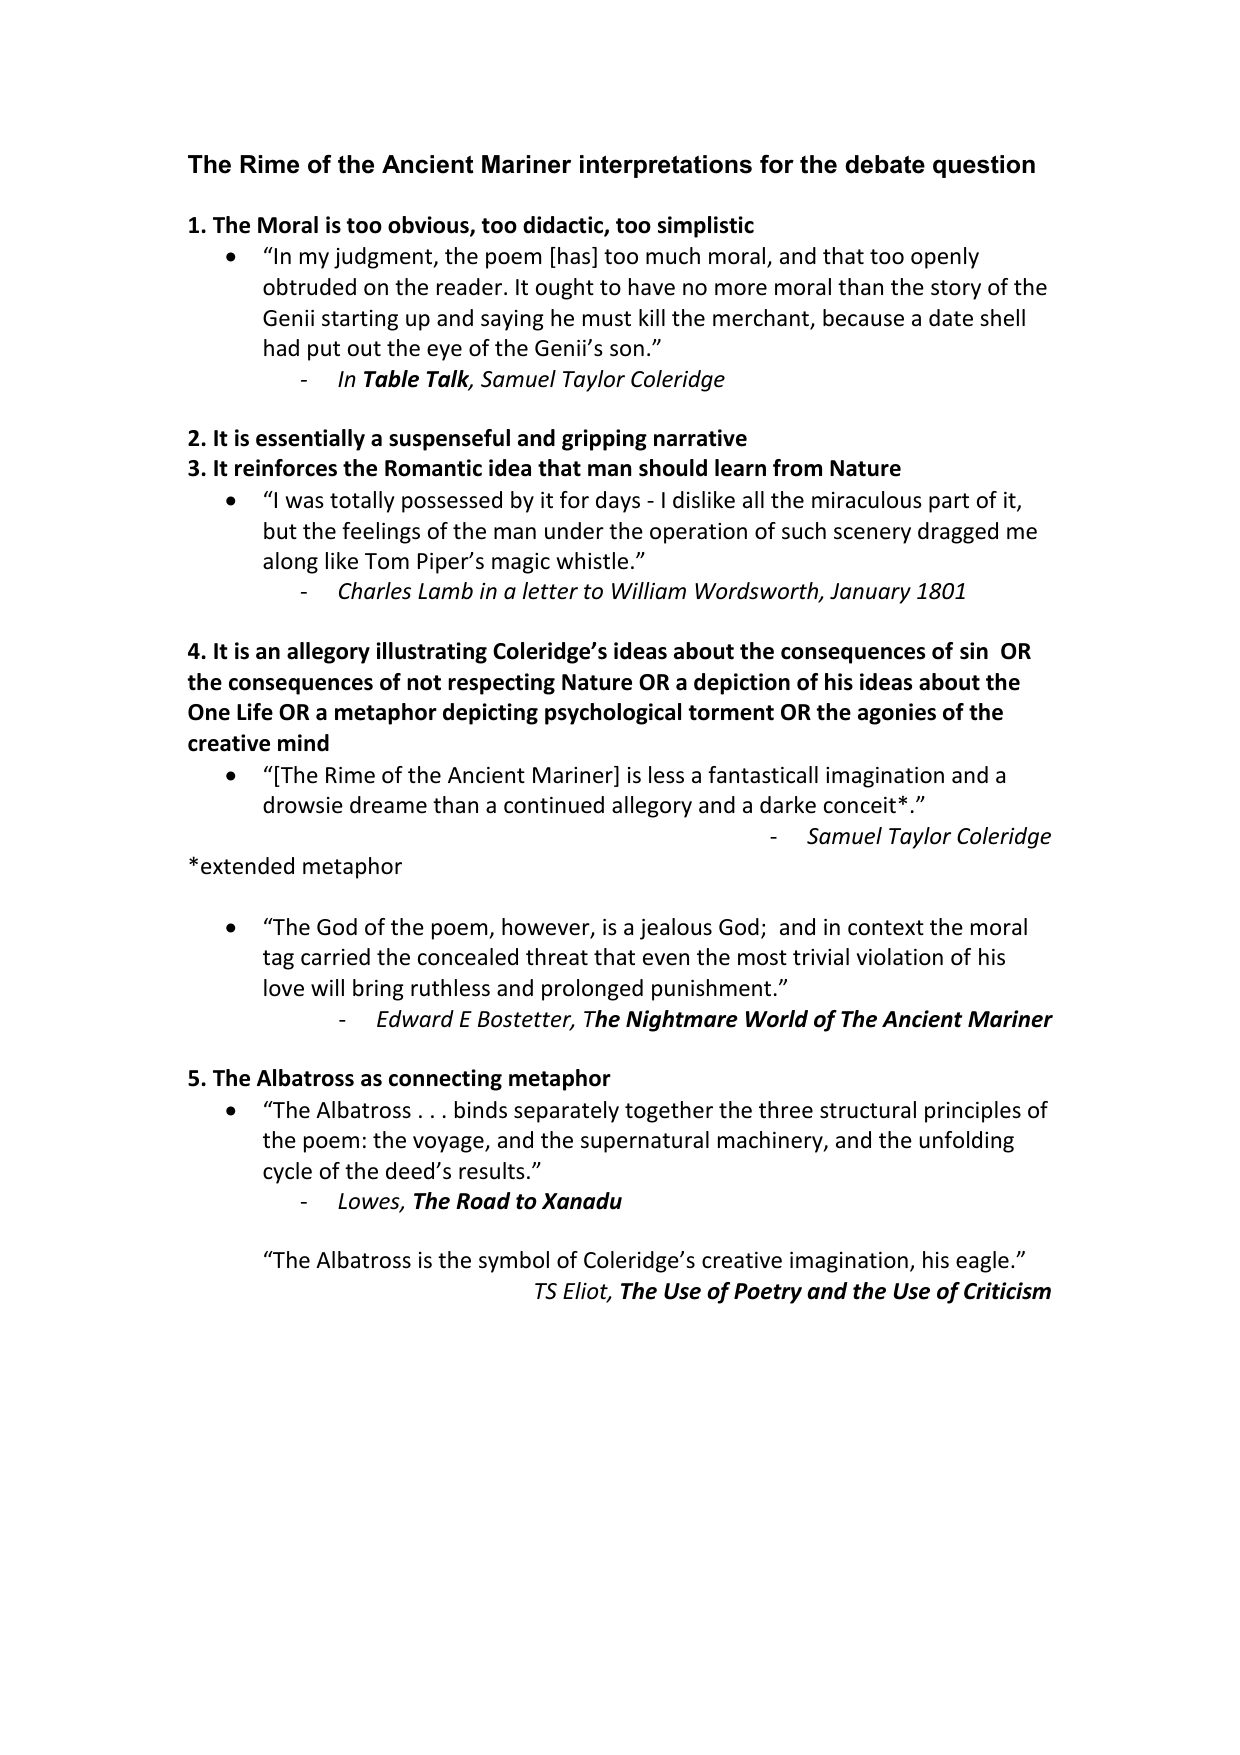 Essay Samples For High School  Public Health Essay also How To Write A Good English Essay The Rime Of The Ancient Mariner Interpretations For The Debate Federalism Essay Paper